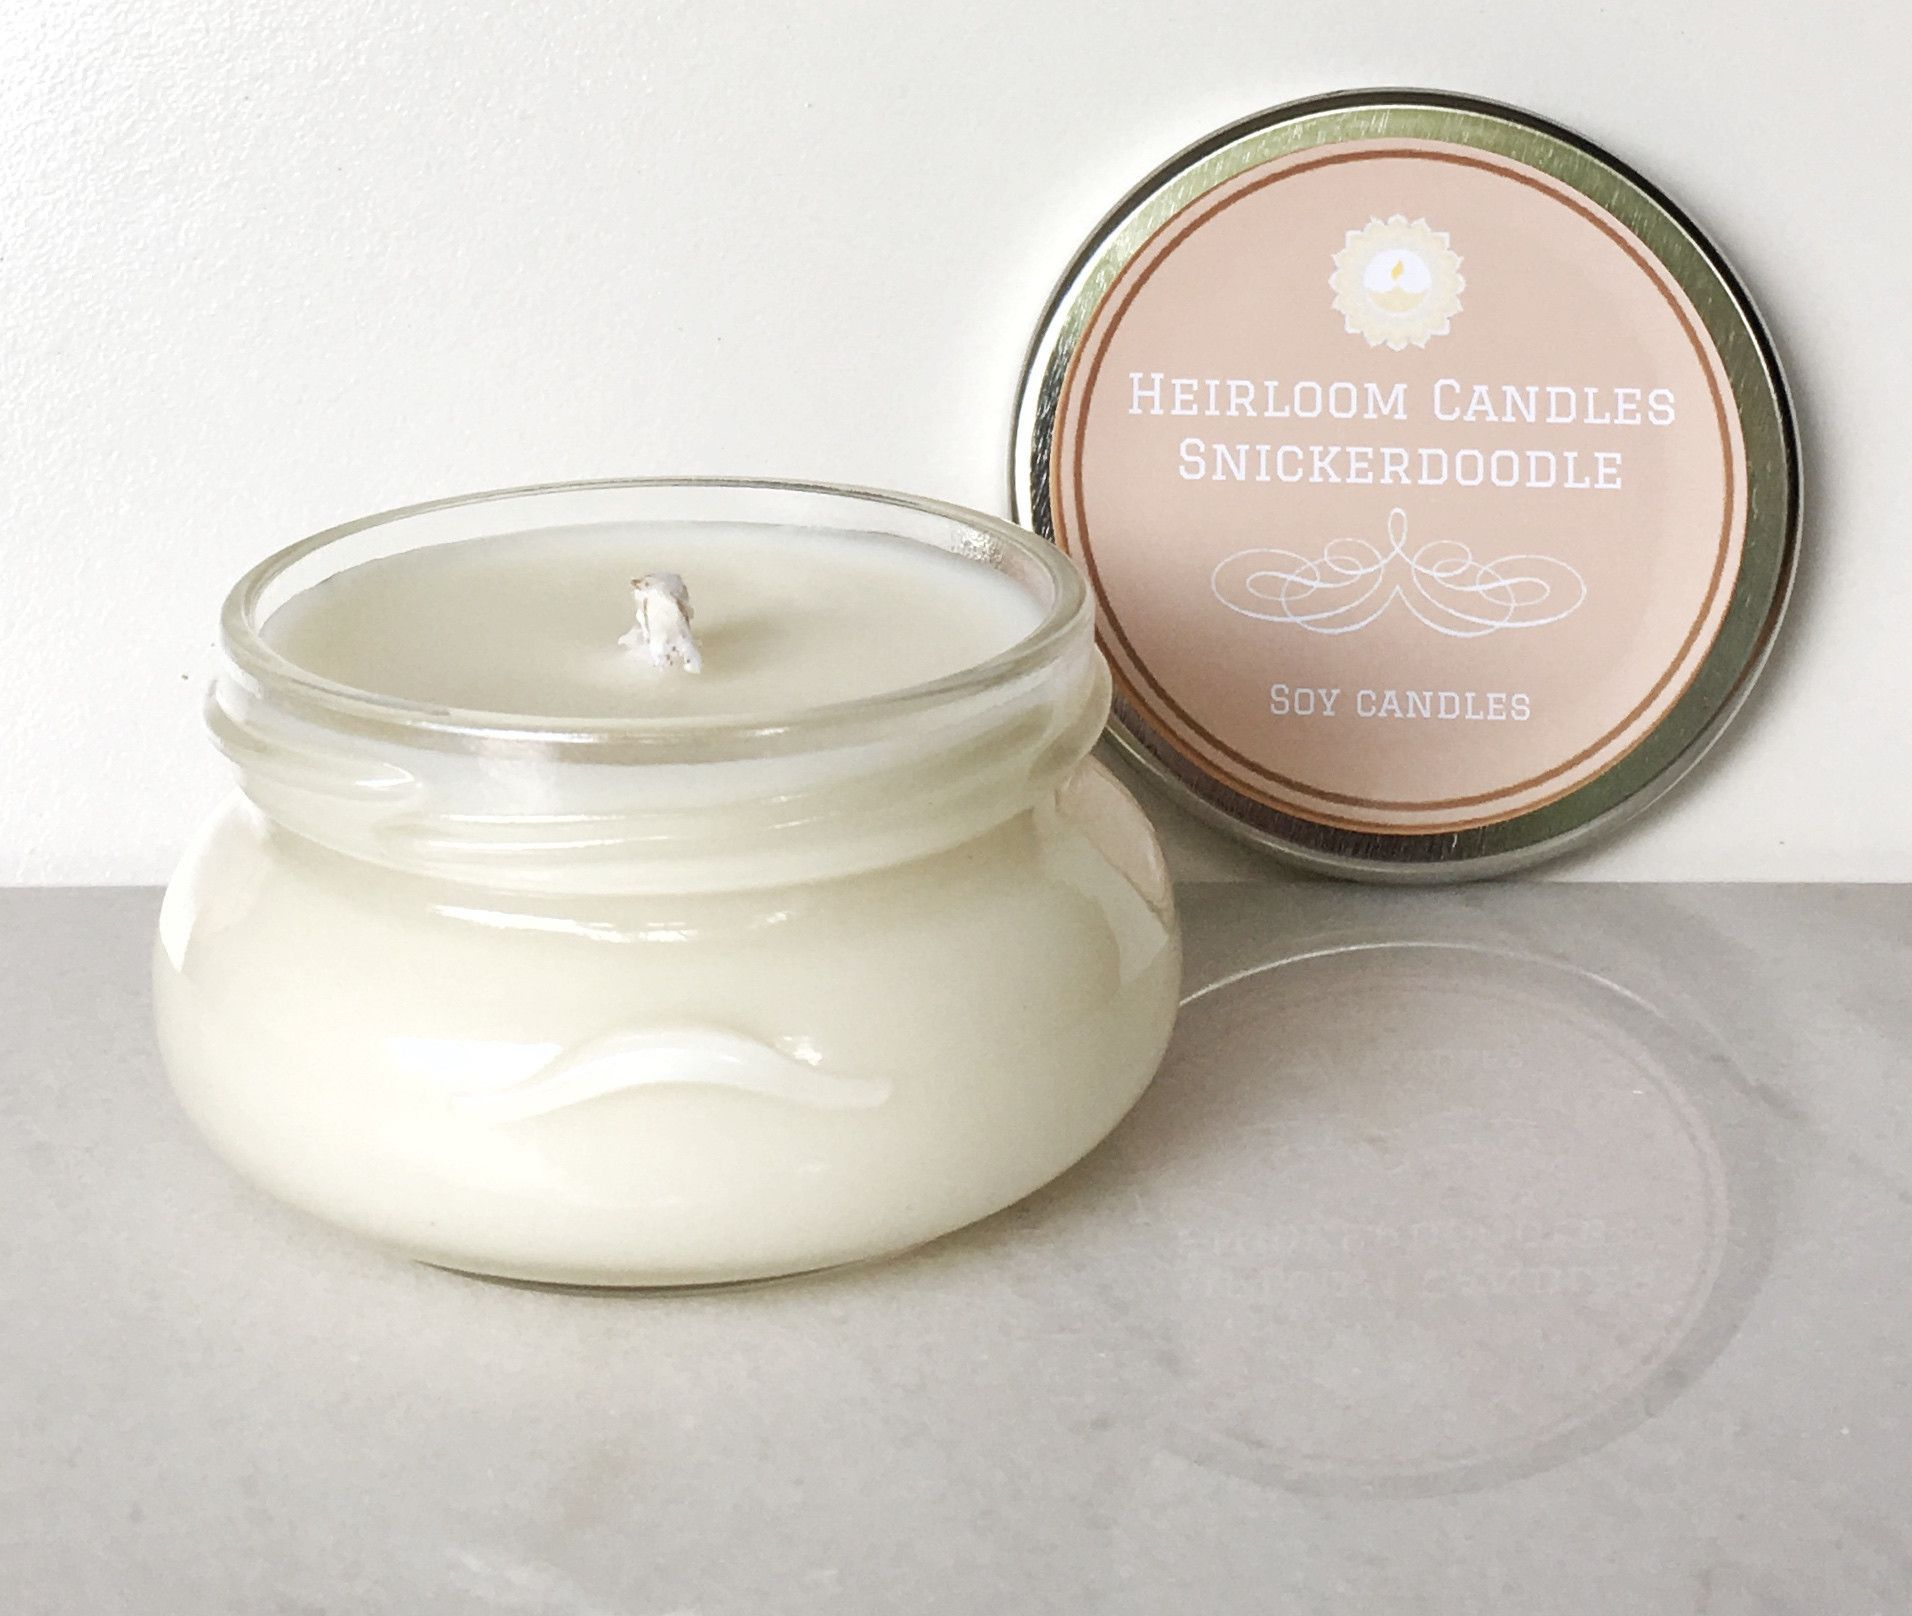 Snickerdoodle Soy Candle Glass Tureen 6 12oz Girly Pinterest Natural Wax Scented Candles Cinnamon Vanilla